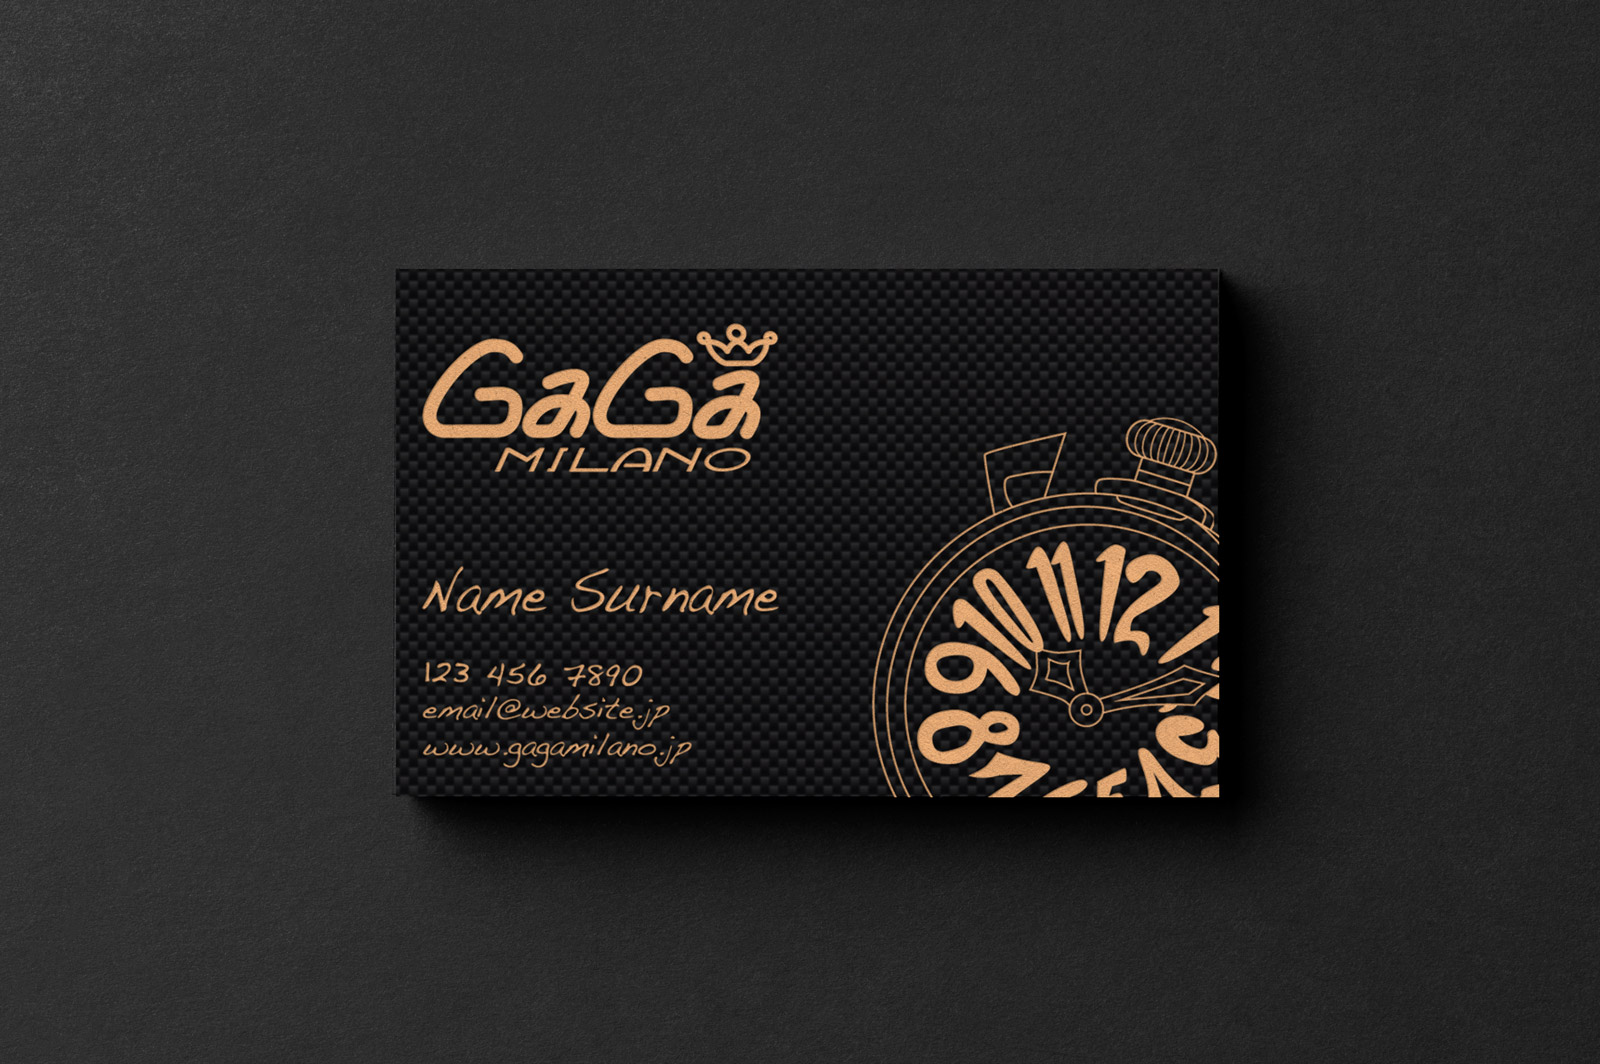 Gaga-Milano-Cardissimo-Carbon-Fibre-Business-Card